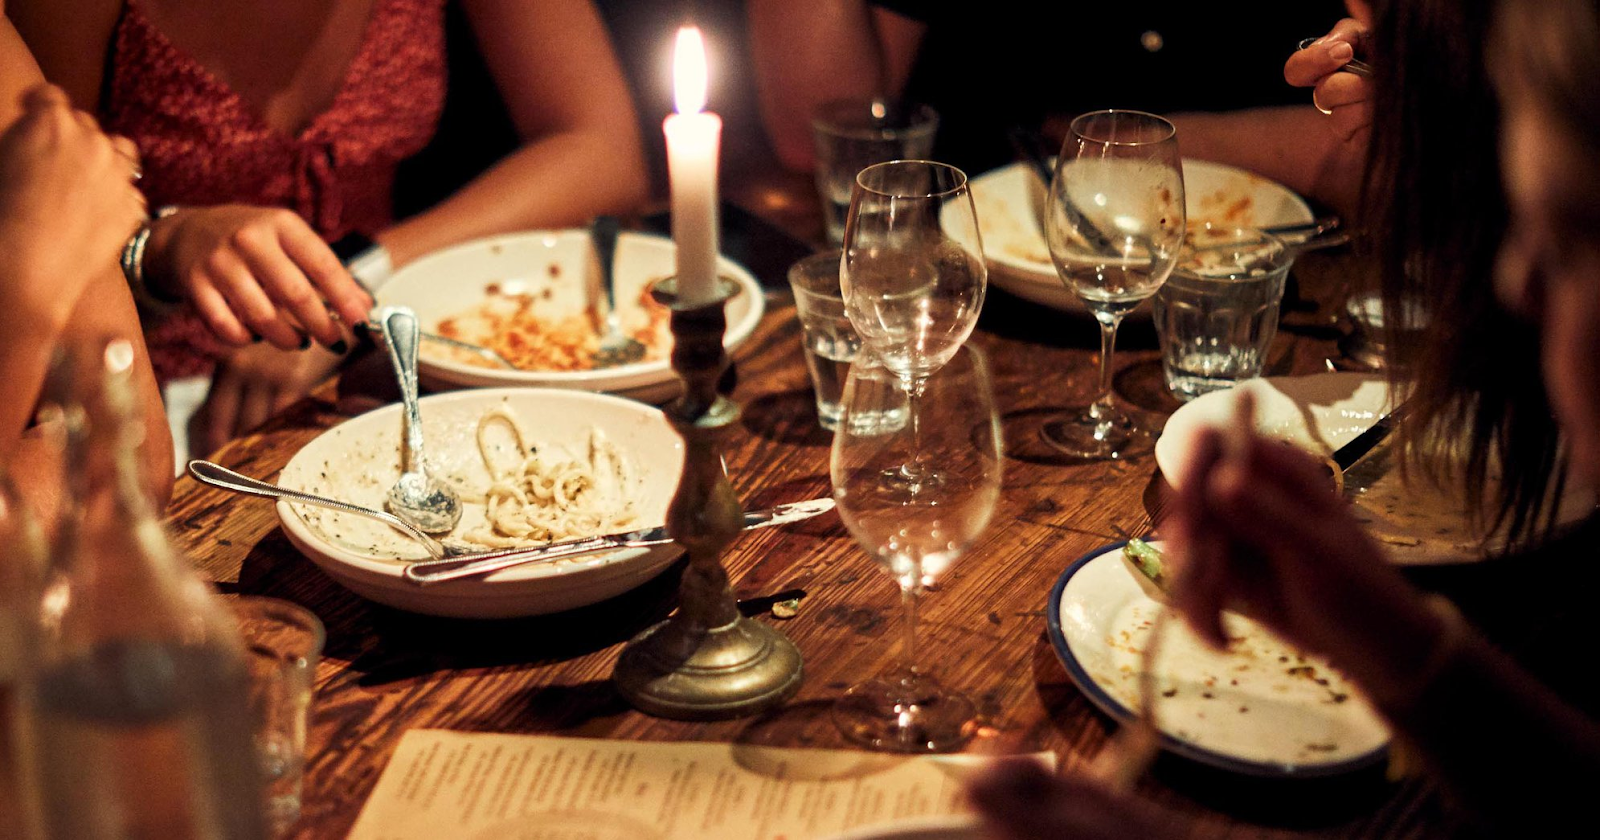 Intimate candleit dinner with plates of pasta